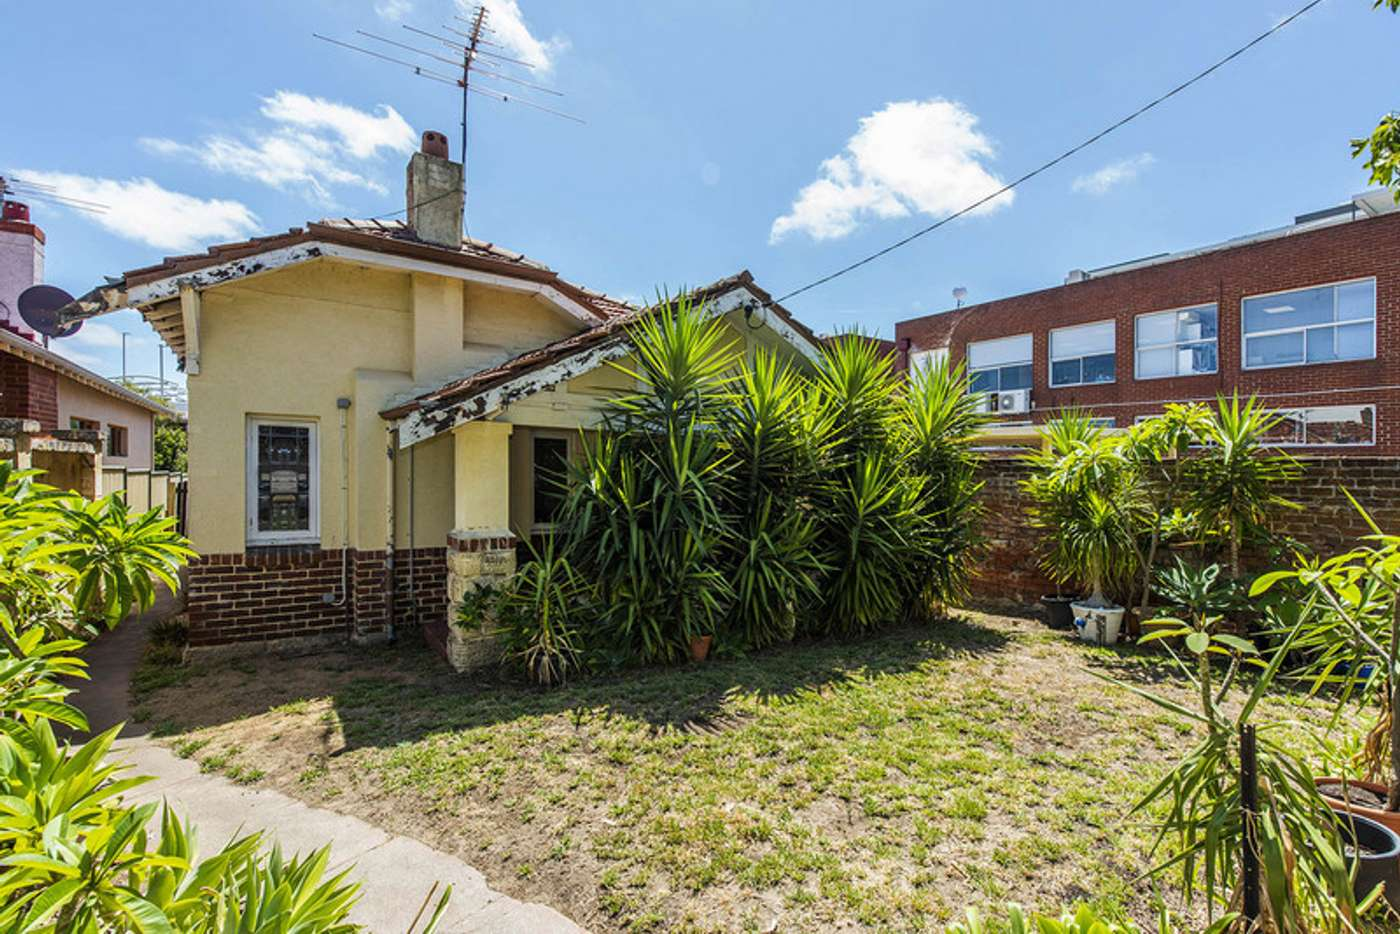 Main view of Homely house listing, 21 Kimberley Street, West Leederville WA 6007